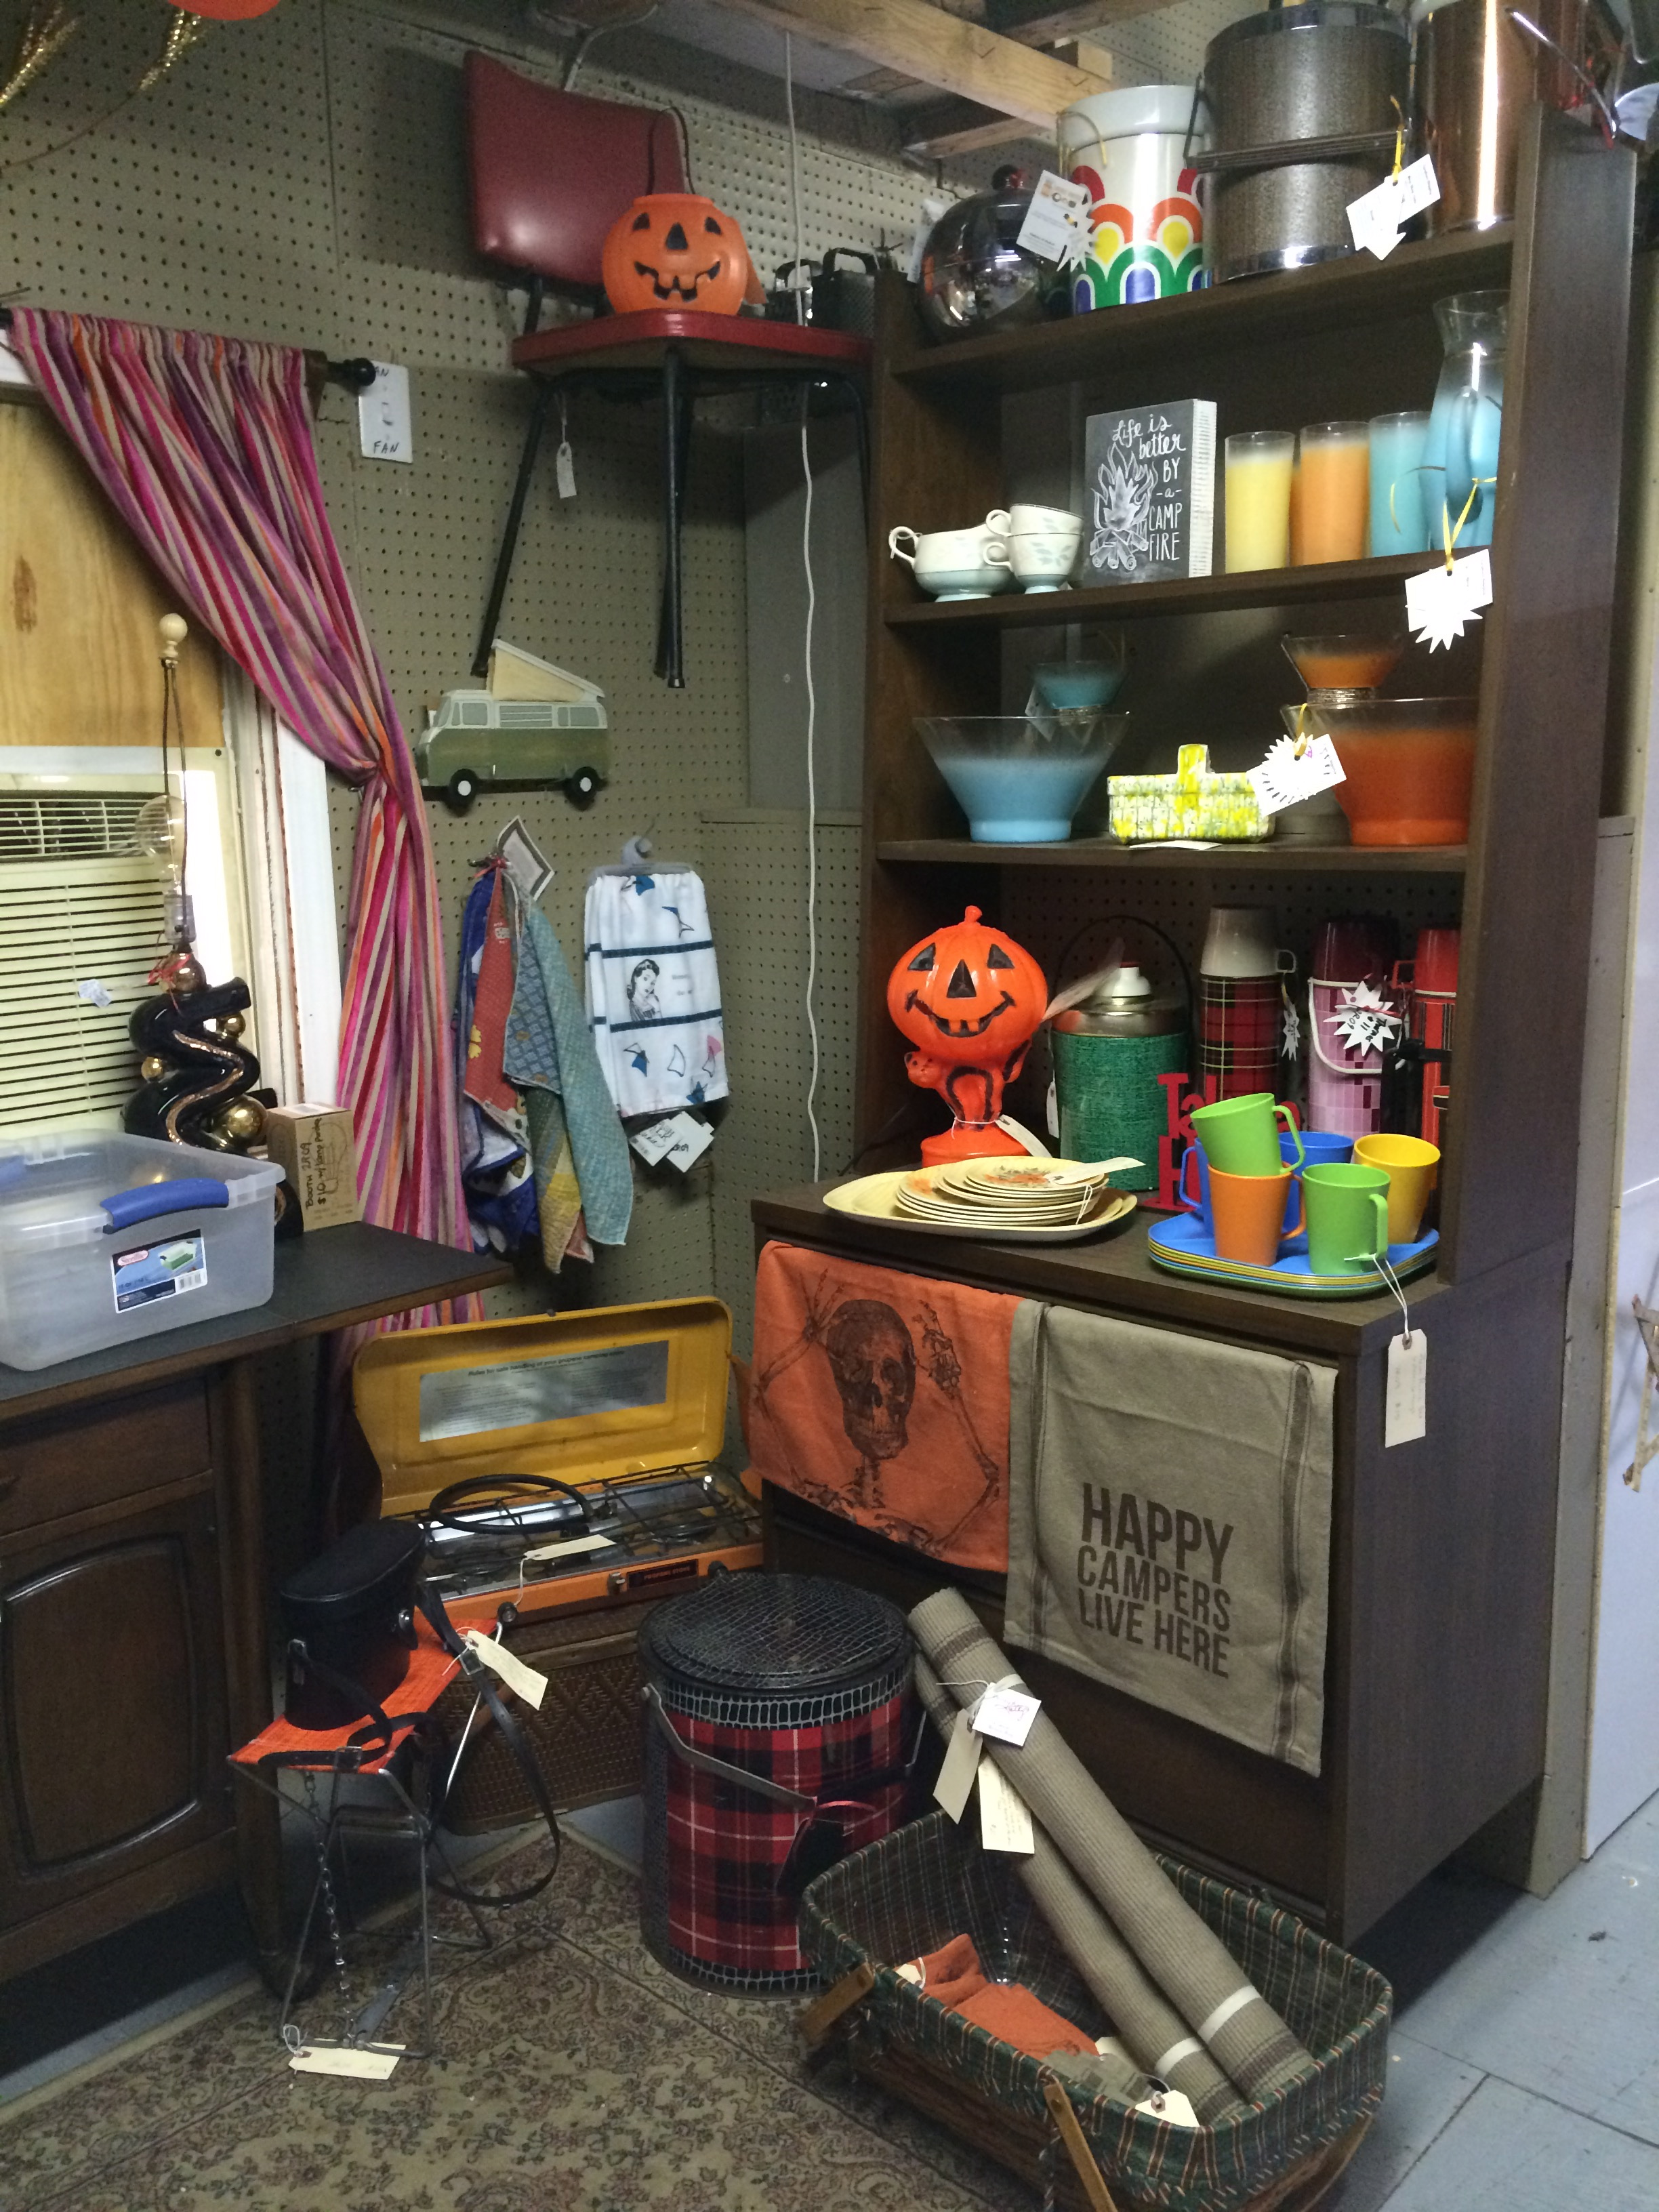 Halloween is IN! Grab some classic blow mold lights and pumpkin buckets! New door mats! Happy Campers Live Here reverses to WELCOME WHERE FRIENDS AND MARSHMALLOWS GET TOASTED AT THE SAME TIME.  Shop at fleetwoodantiquemall.com WED-SUN 10am-6pm